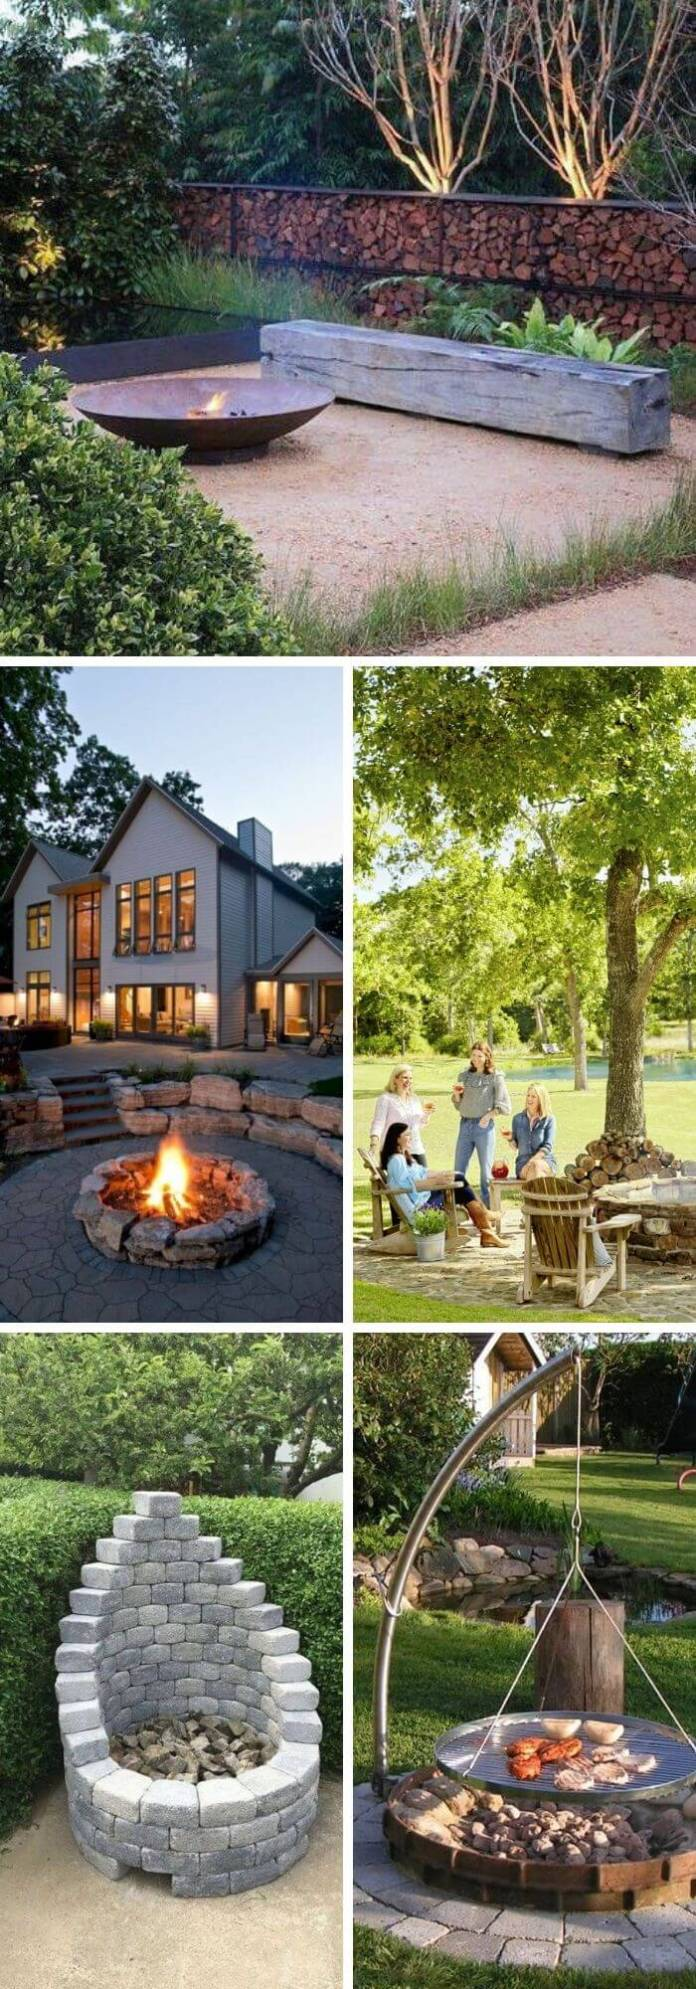 A Backyard with a Fire Pit